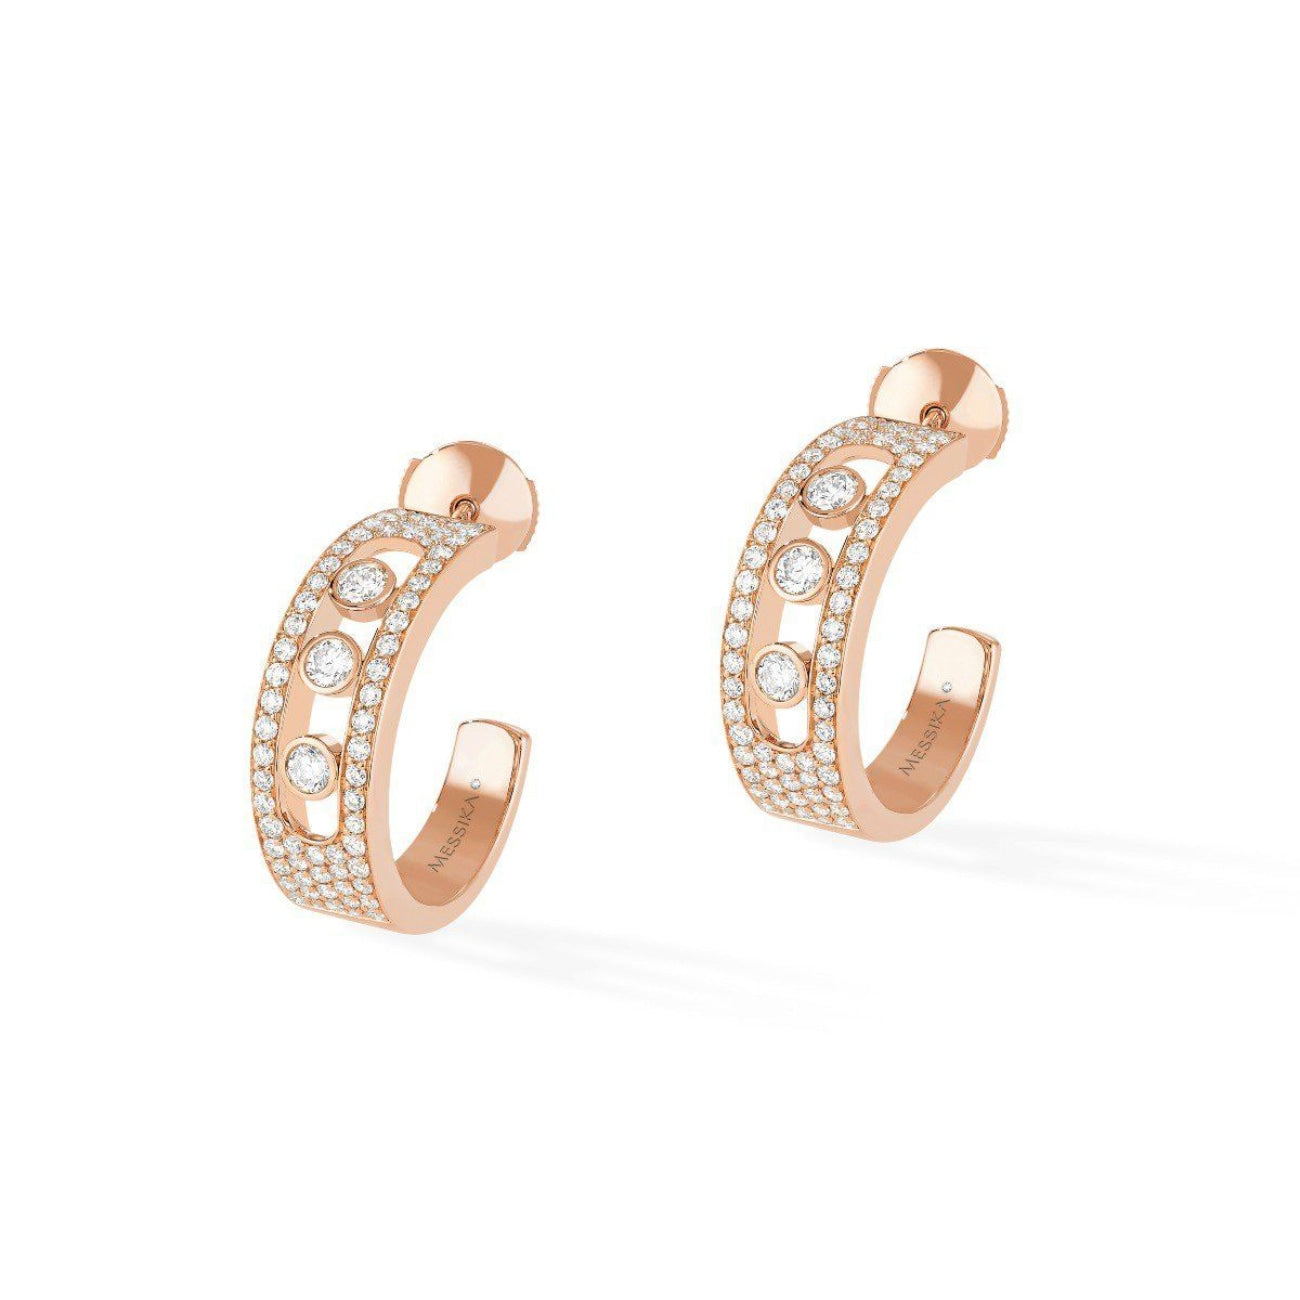 Messika Jewelry - Move Joaillerie Pavé Hoop EARRINGS - ROSE GOLD | Manfredi Jewels